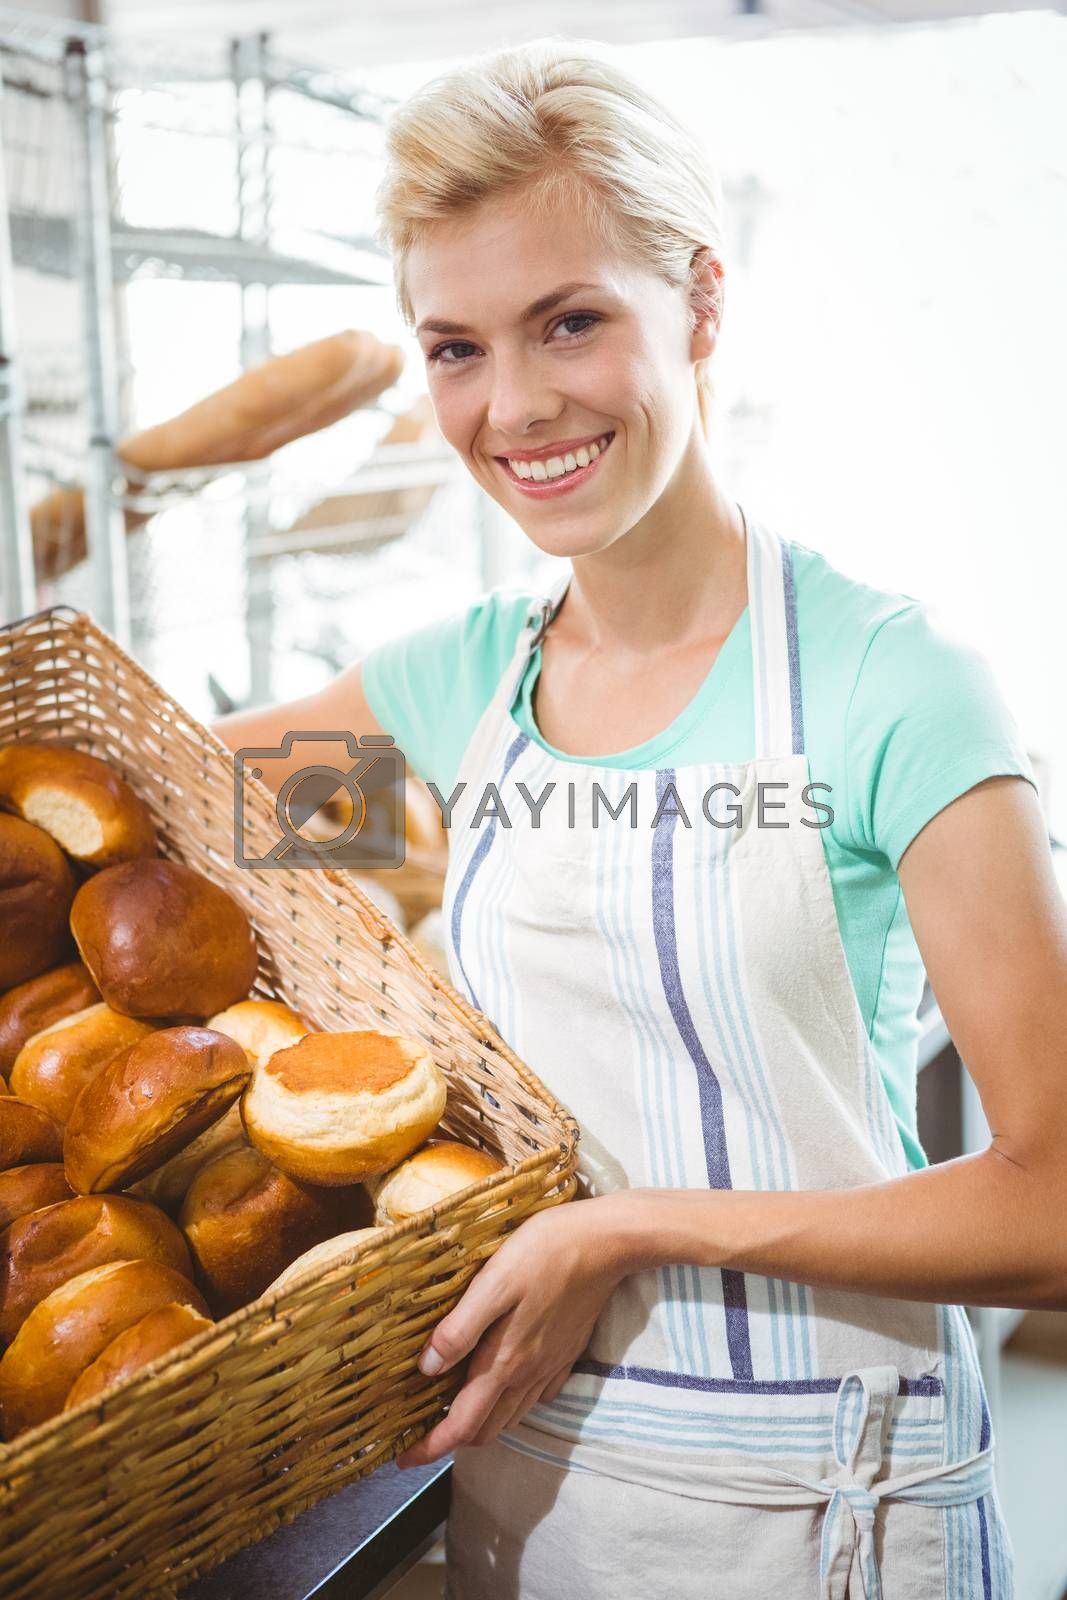 Royalty free image of Smiling waitress carrying basket of bread by Wavebreakmedia